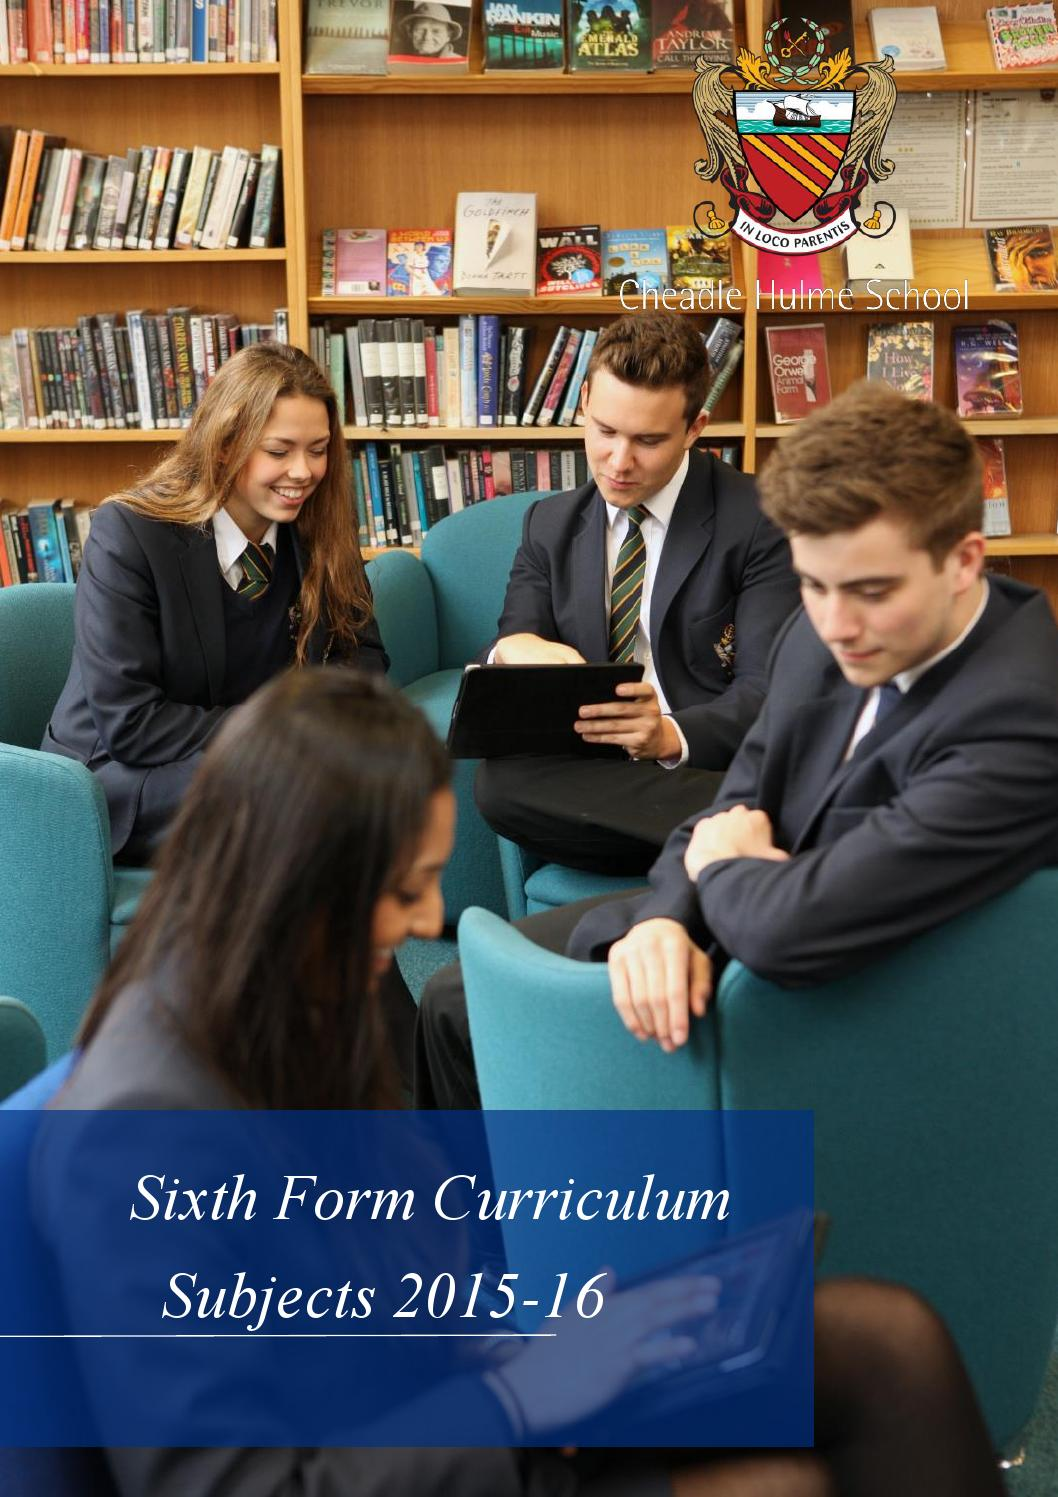 aqa coursework submission forms In year 11, students work on their individual coursework, which is submitted at   list provided by the exam board (not yet available from aqa), research, design,.